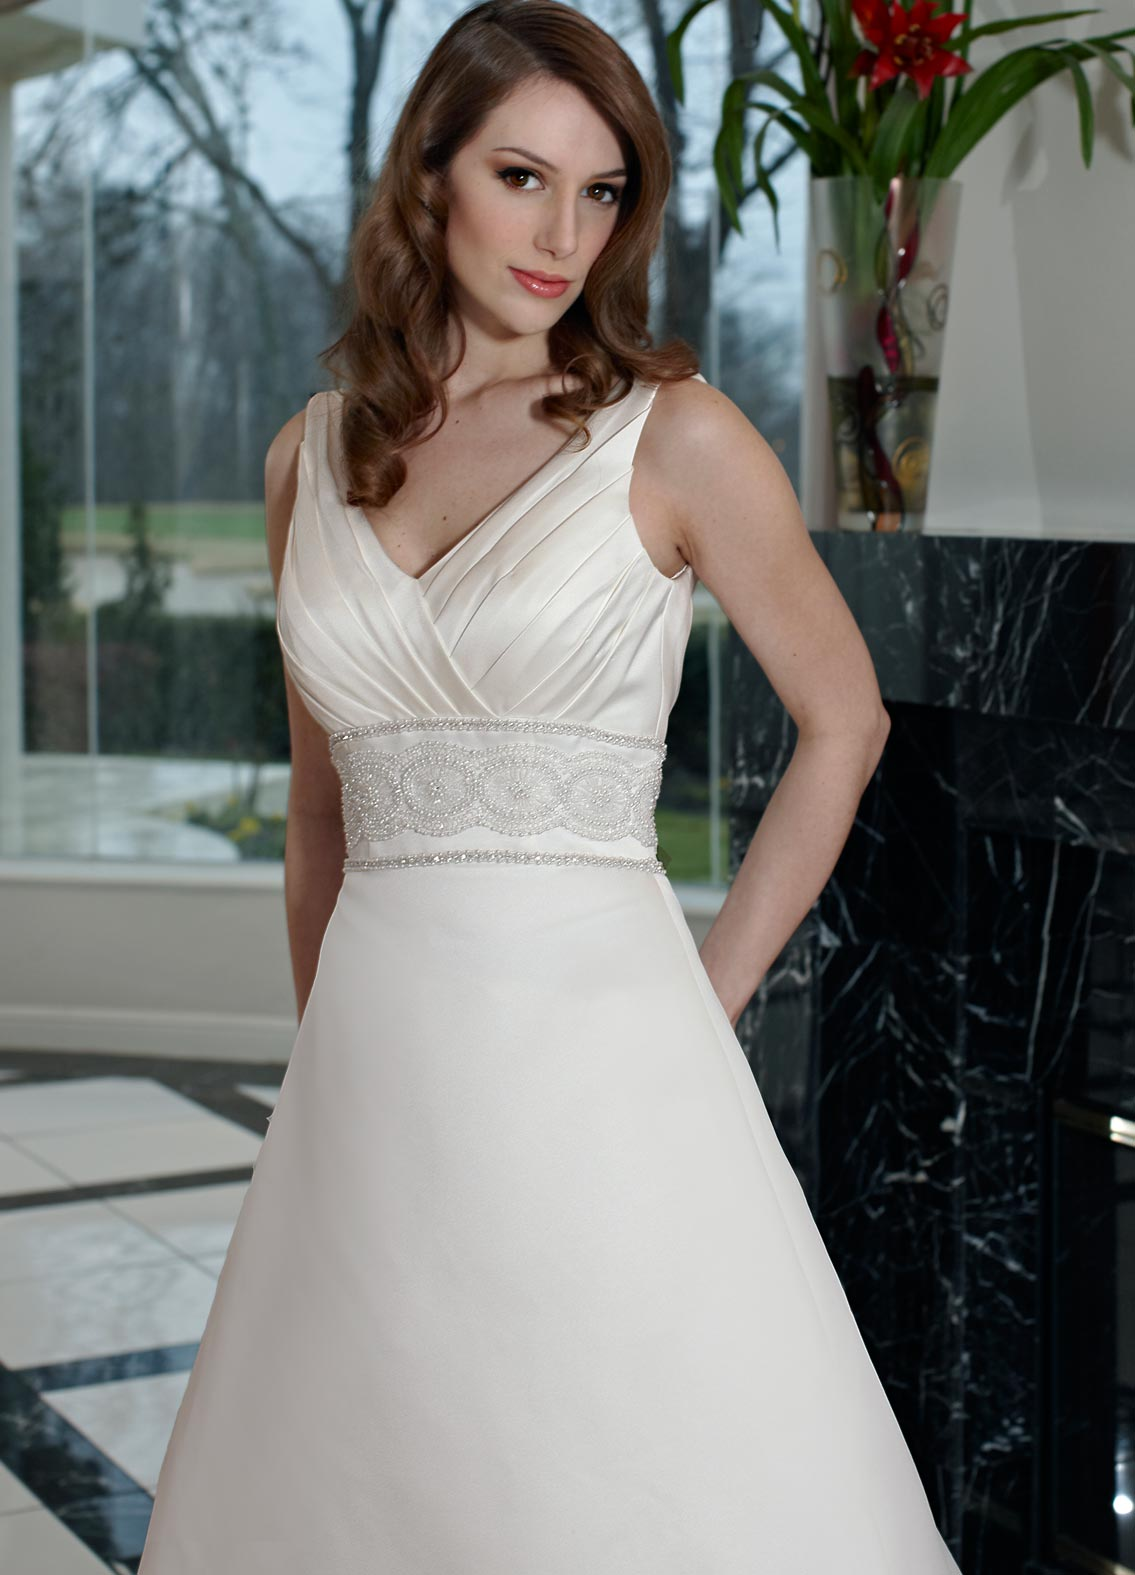 Wedding Dress with Lace Waistband